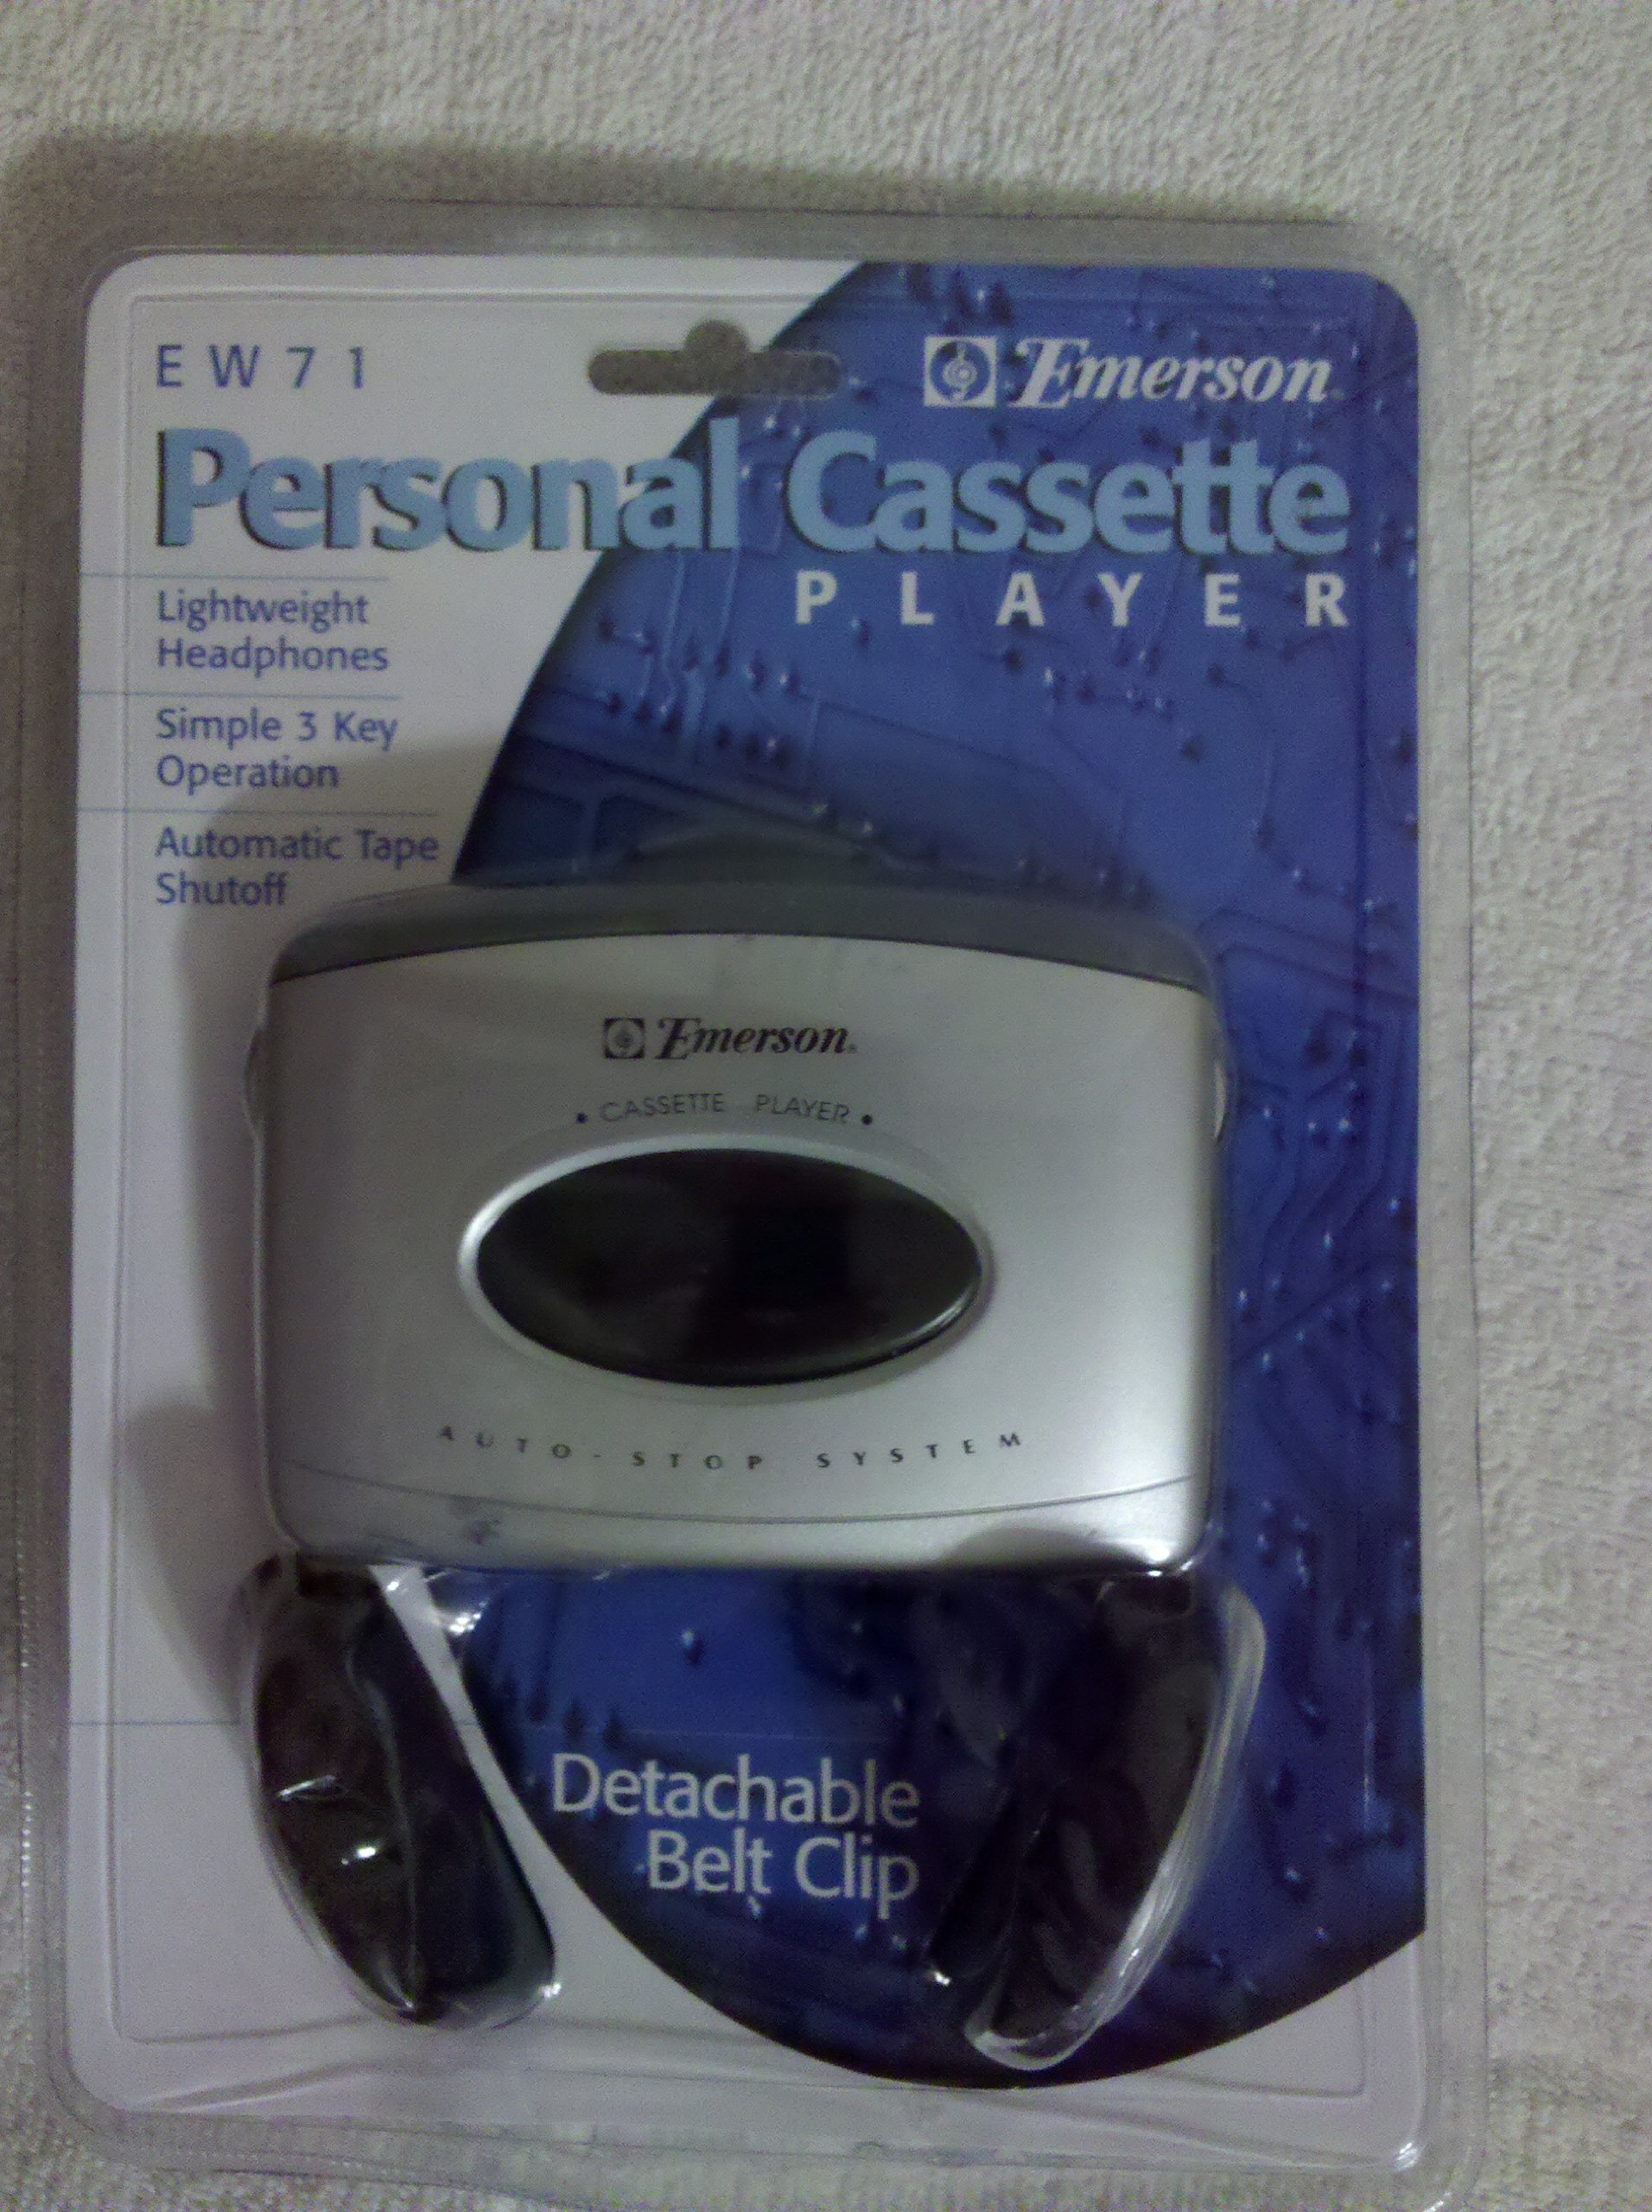 Emerson Personal Cassette Player Ew71